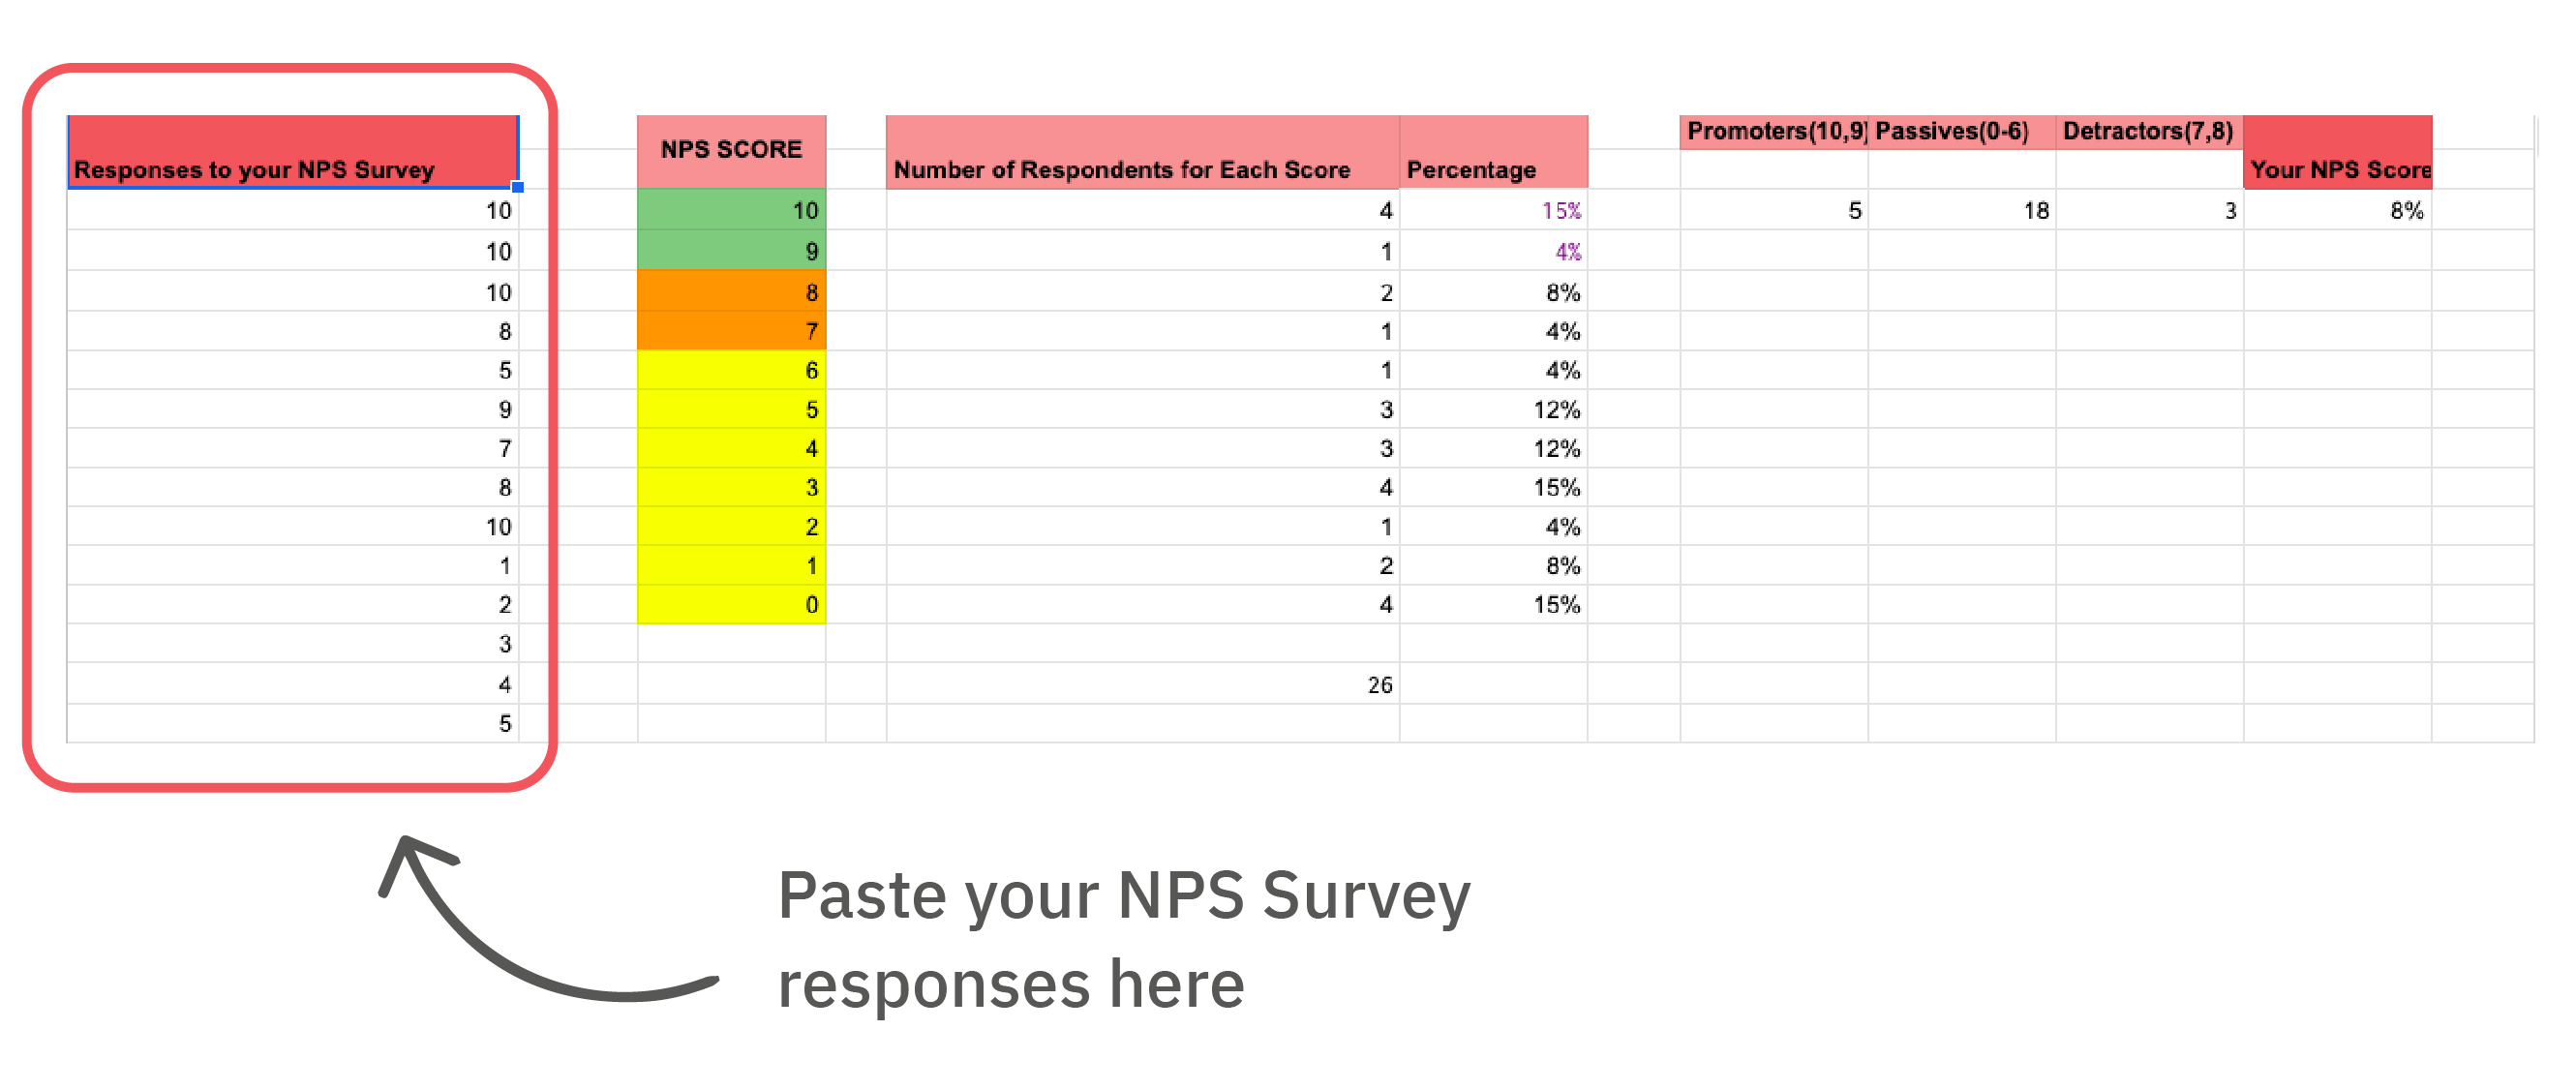 Copy data from the file that contains NPS responses. Paste it into the section,'Responses to your NPS Survey' of our Net Promoter Score Calculation Template.